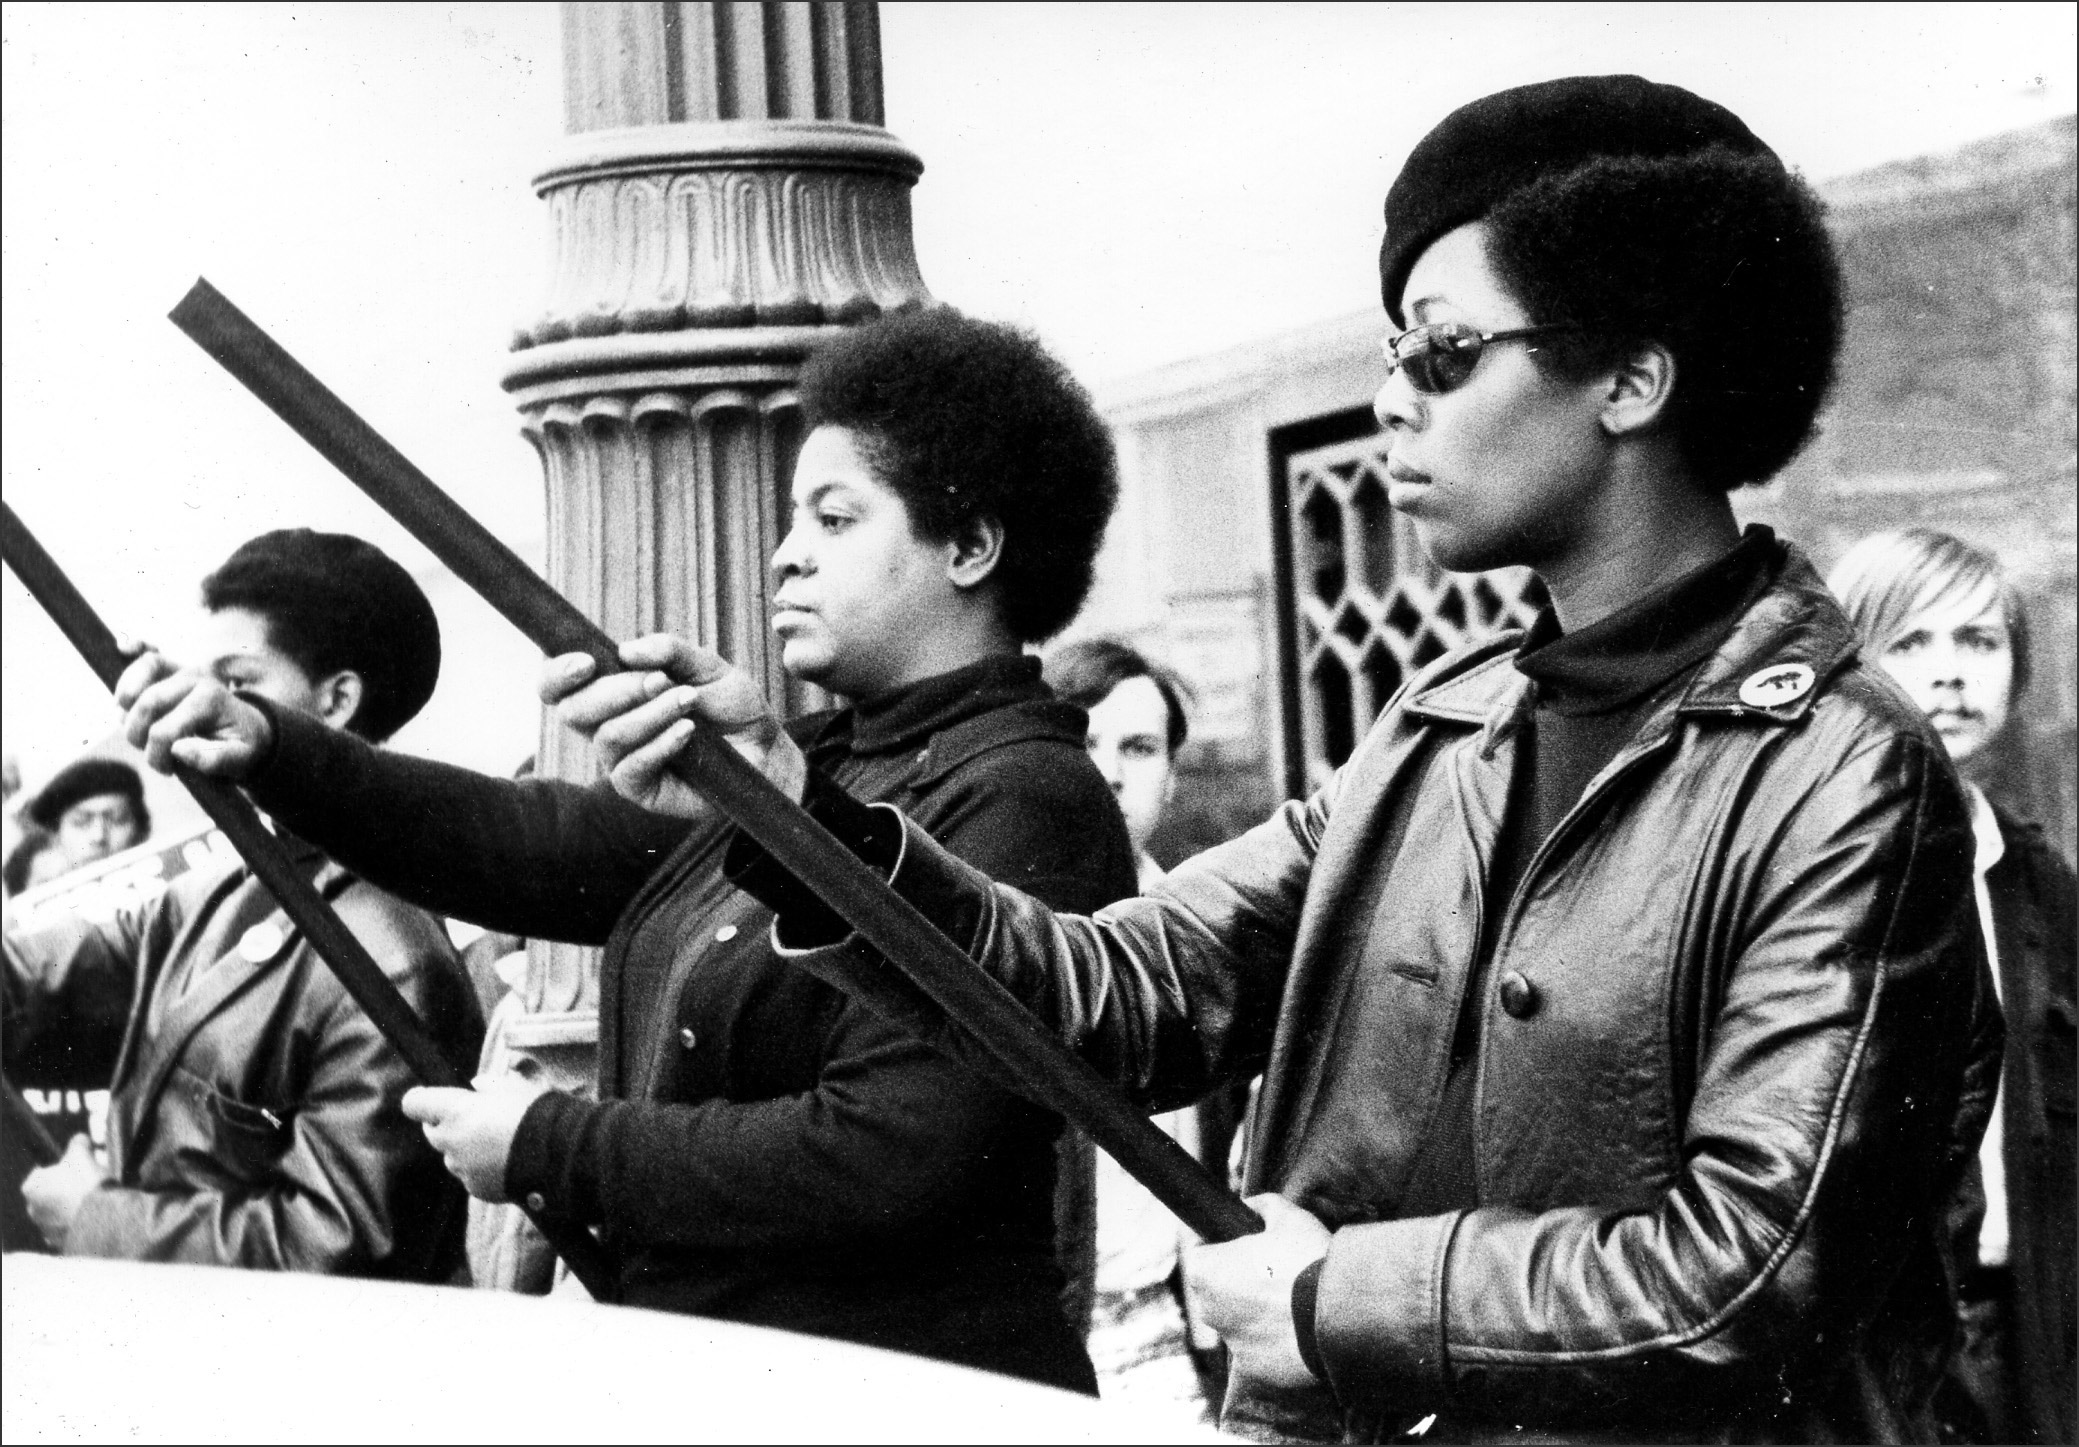 a history of the black panther party bpp -black panther party was founded by huey pnewton and bobby seale on october 15, 1966 1967 - the first bpp office was open at 5624 grove street, oakland, ca in january.